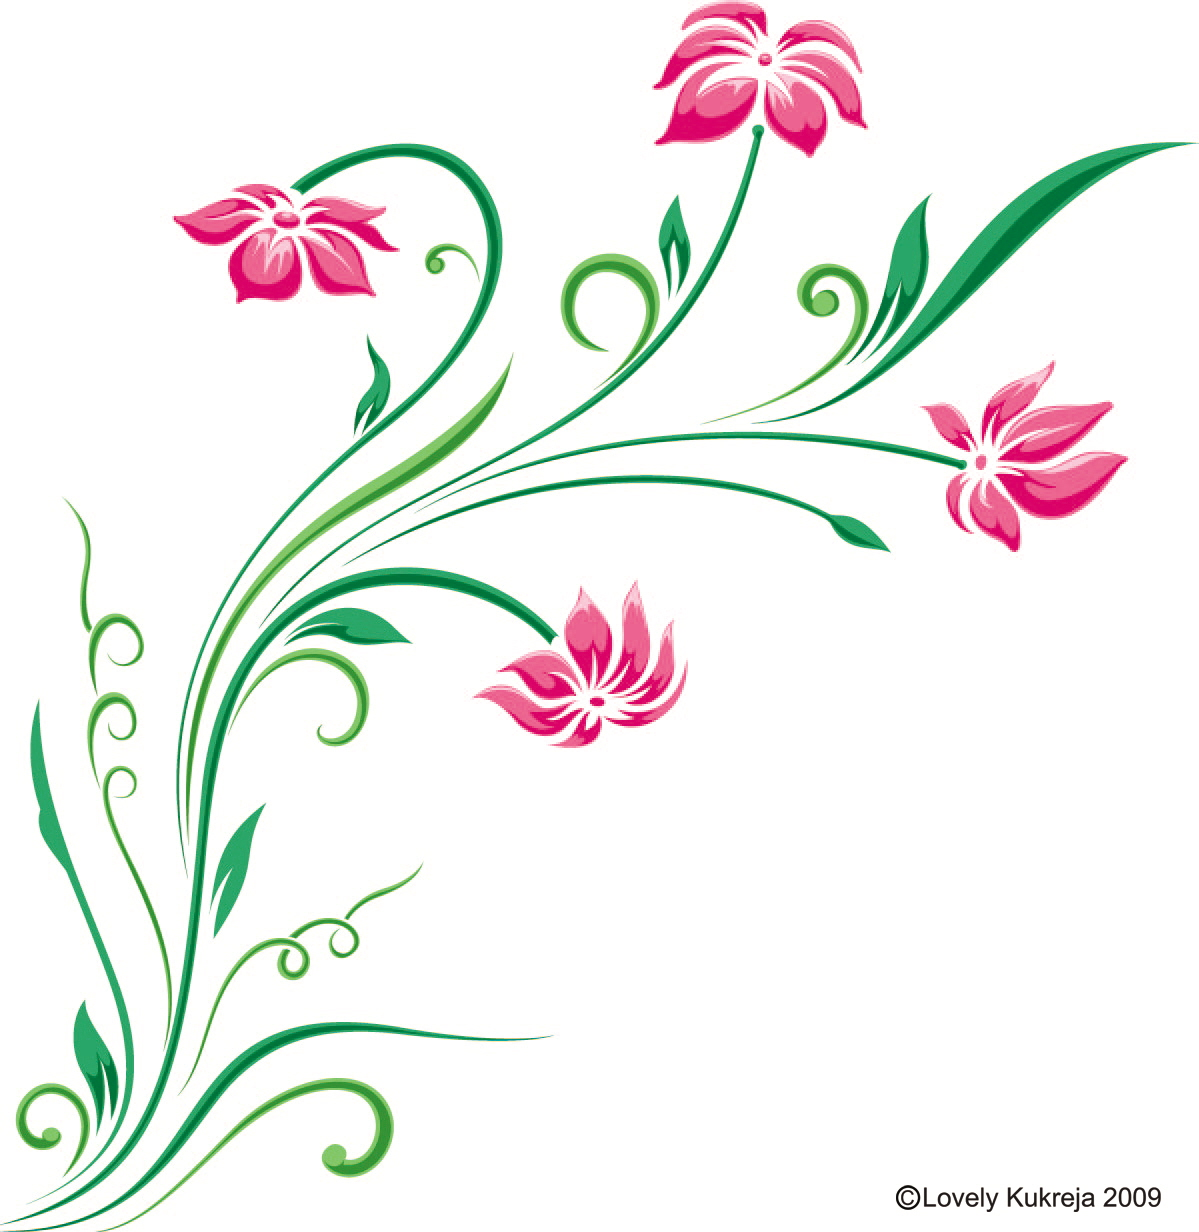 Graphics floral svg royalty free Graphic and web by Lovely Kukreja at Coroflot.com svg royalty free